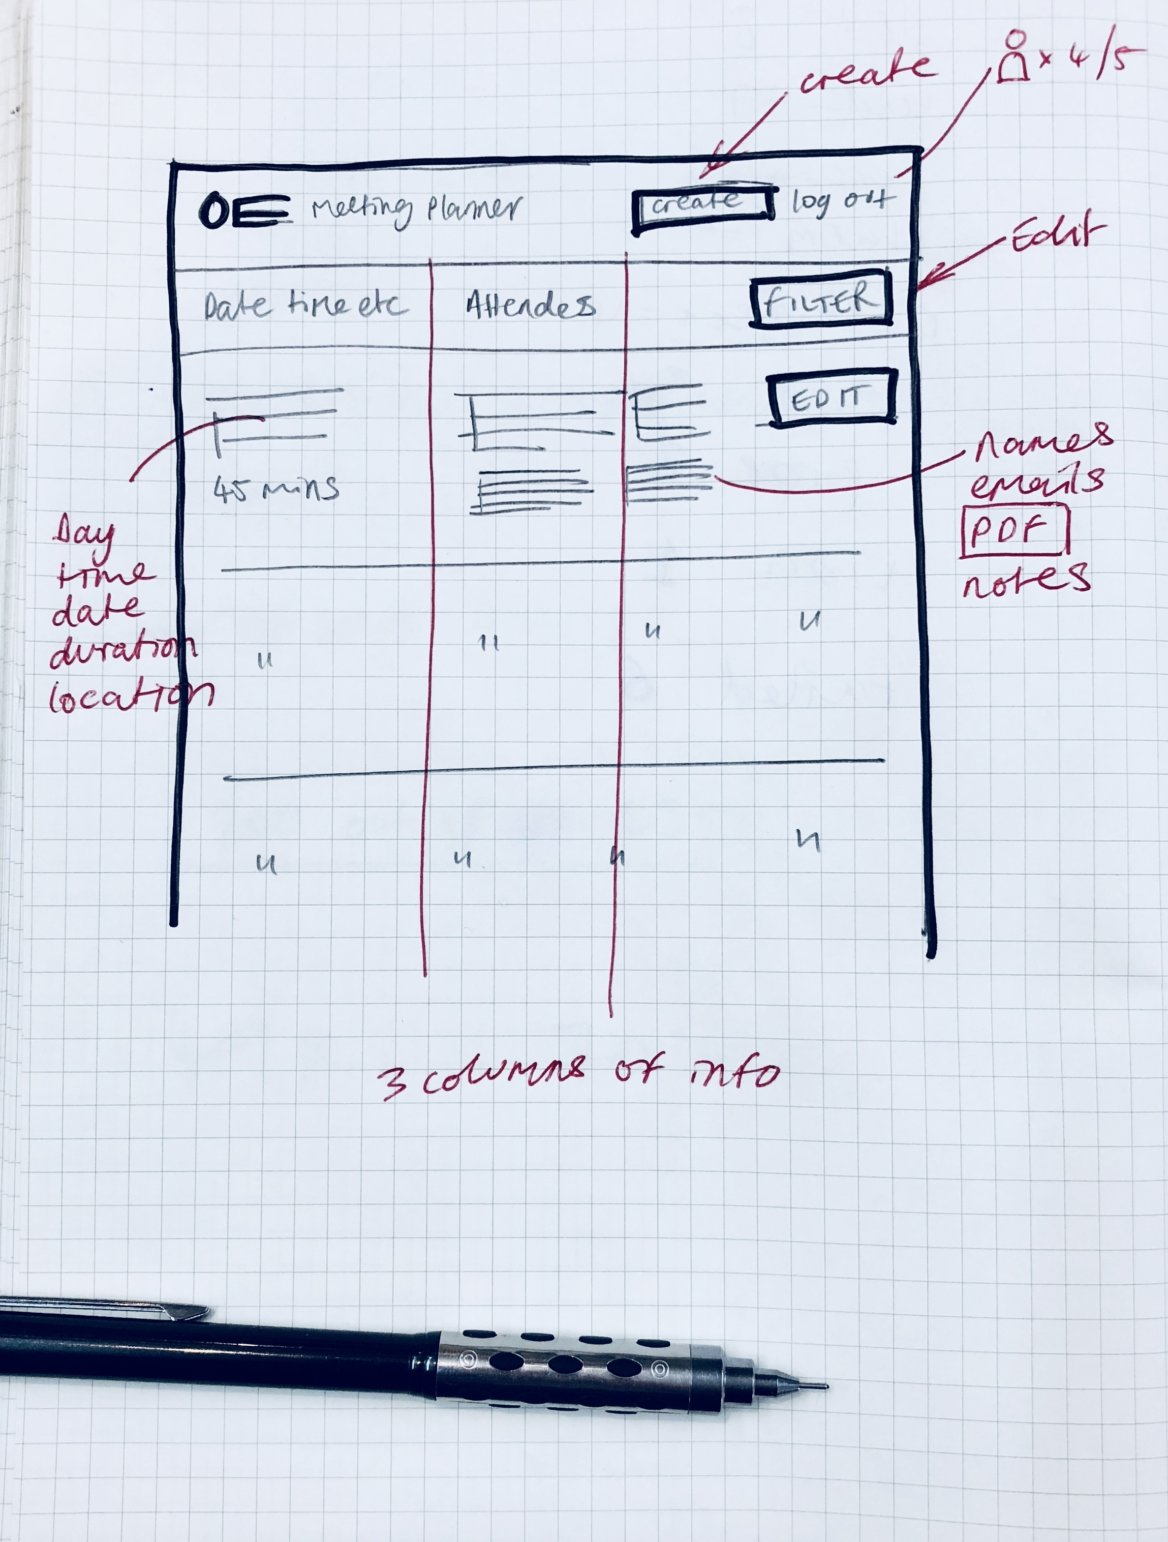 An early sketch of our meeting planner for a three-day ministerial conference